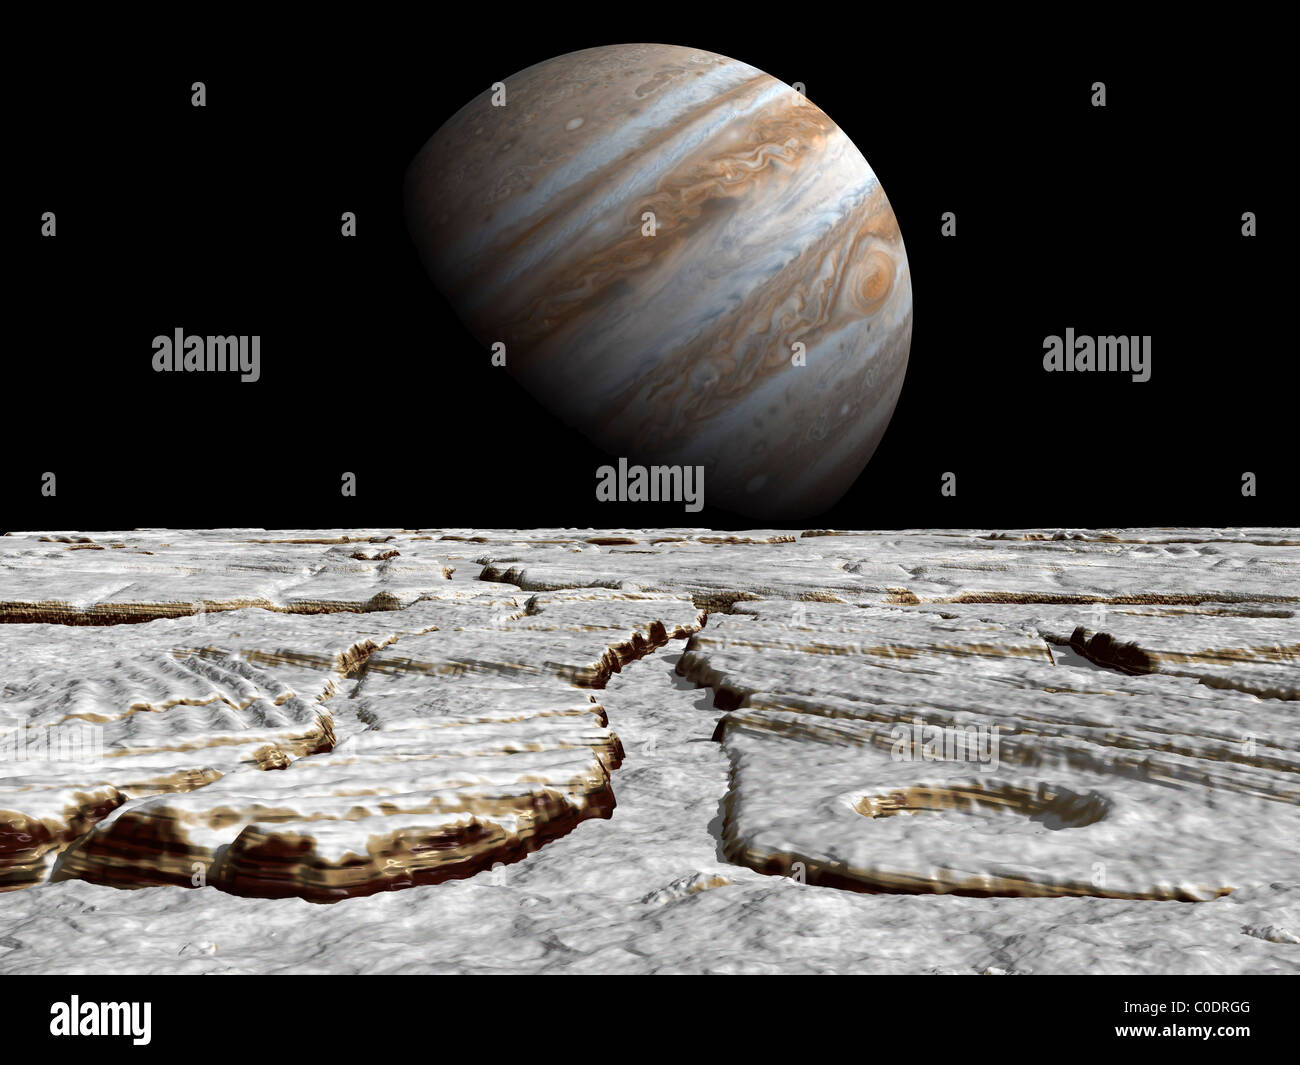 Concept de l'artiste de Jupiter comme vu à travers la surface glacée de la lune Europa. Photo Stock